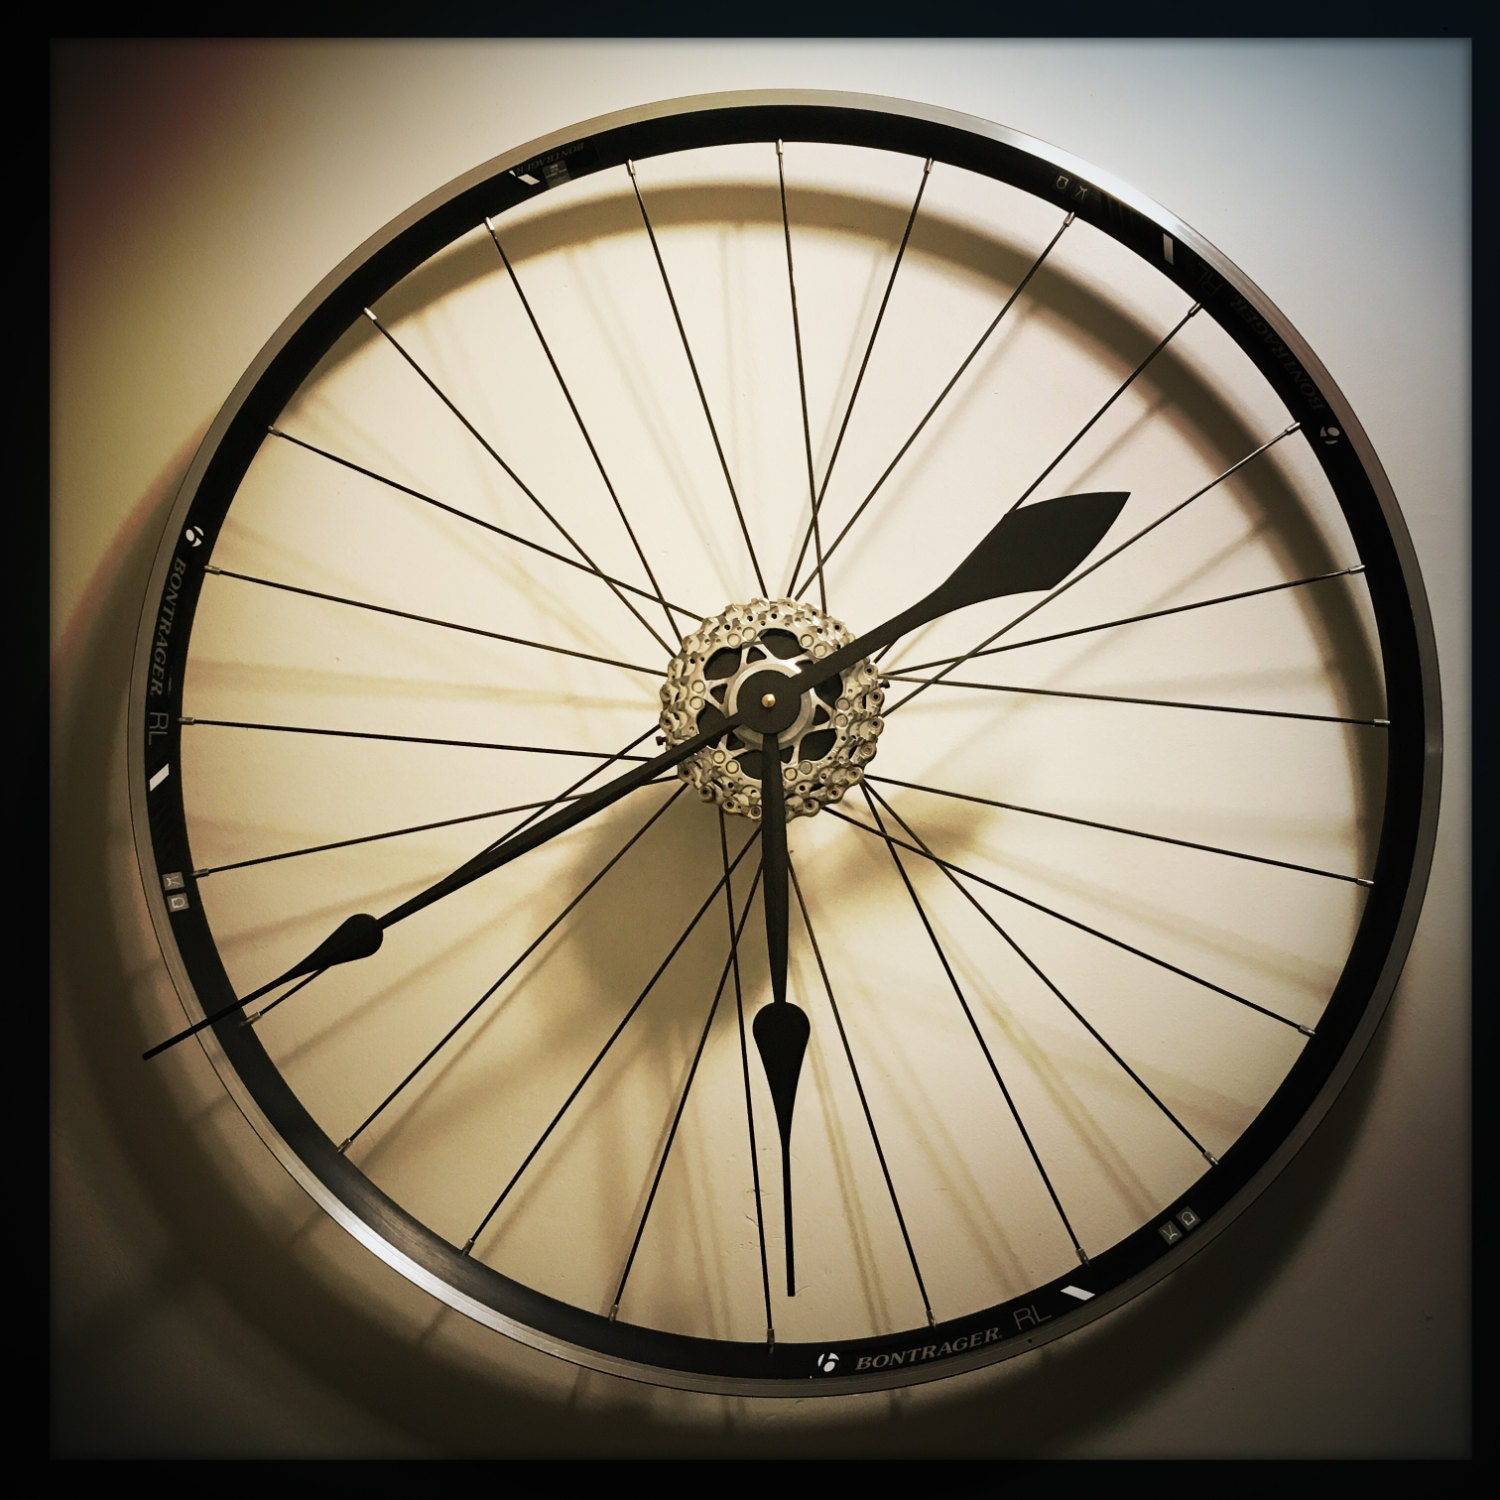 Bike Wheel Clock Large Wall Clock Bicycle by DreamGreatDreams